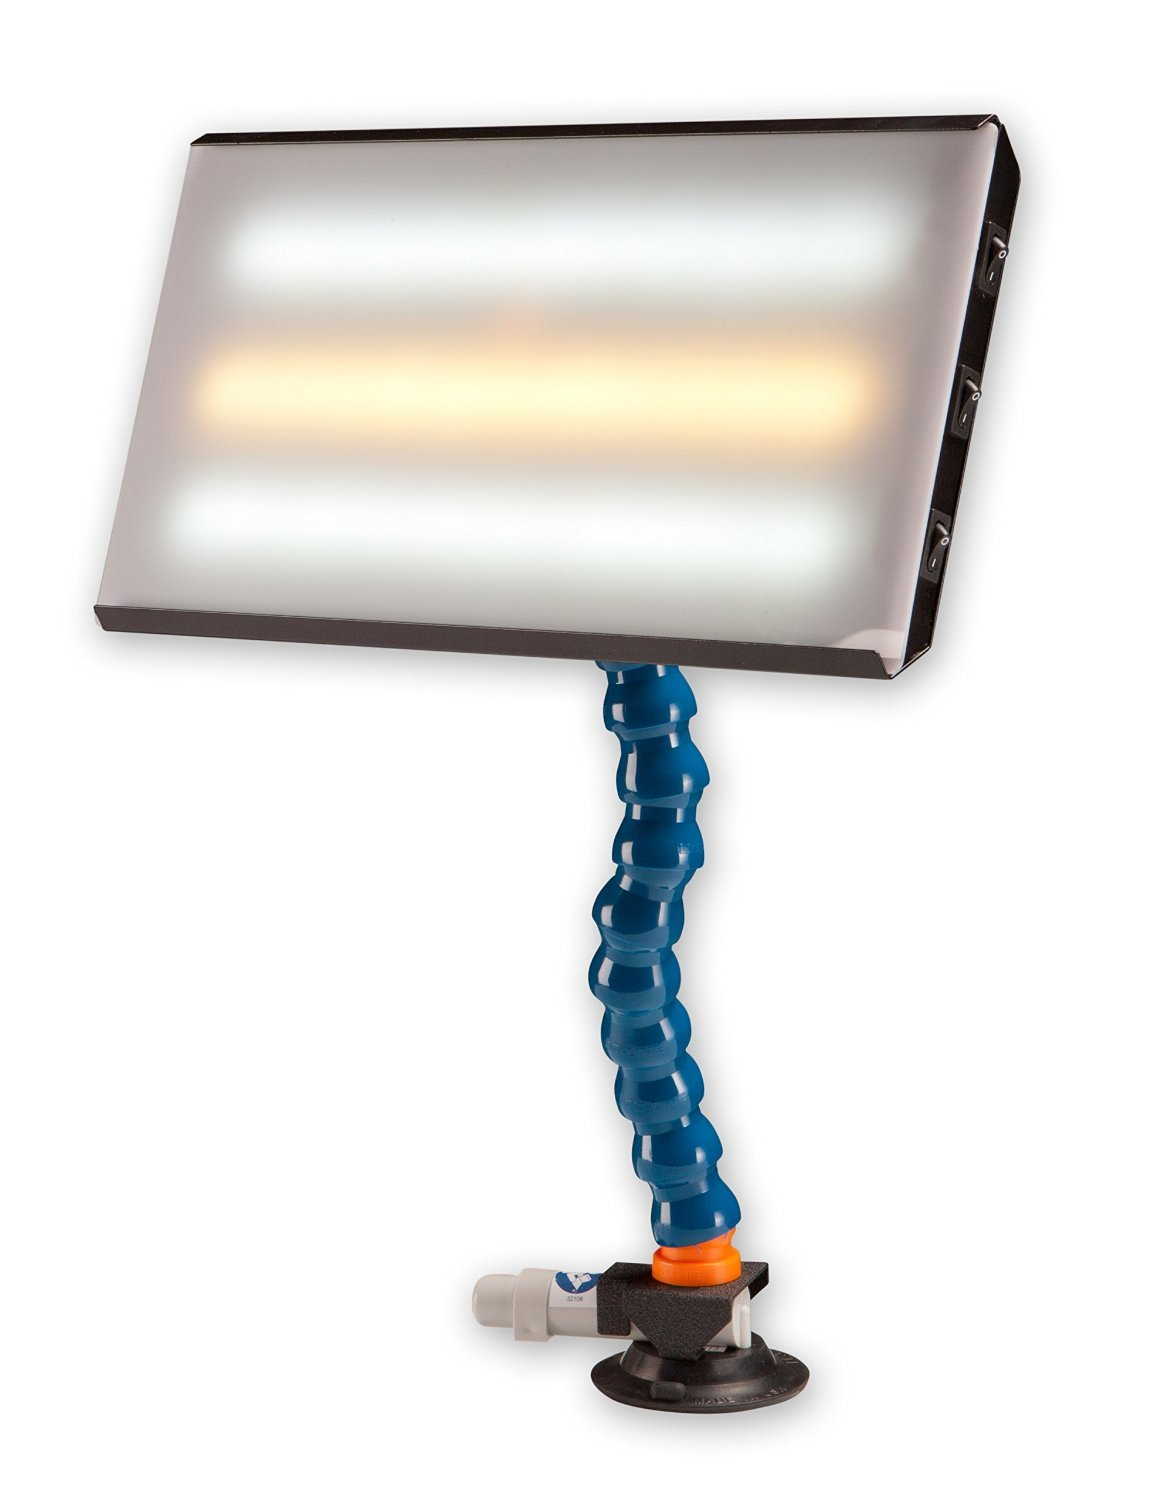 PC LED 130 PDR 13'' Portable 12V CWC LED Light with 110 Converter Paintless Dent Repair by DentMagicTools.com (Image #3)